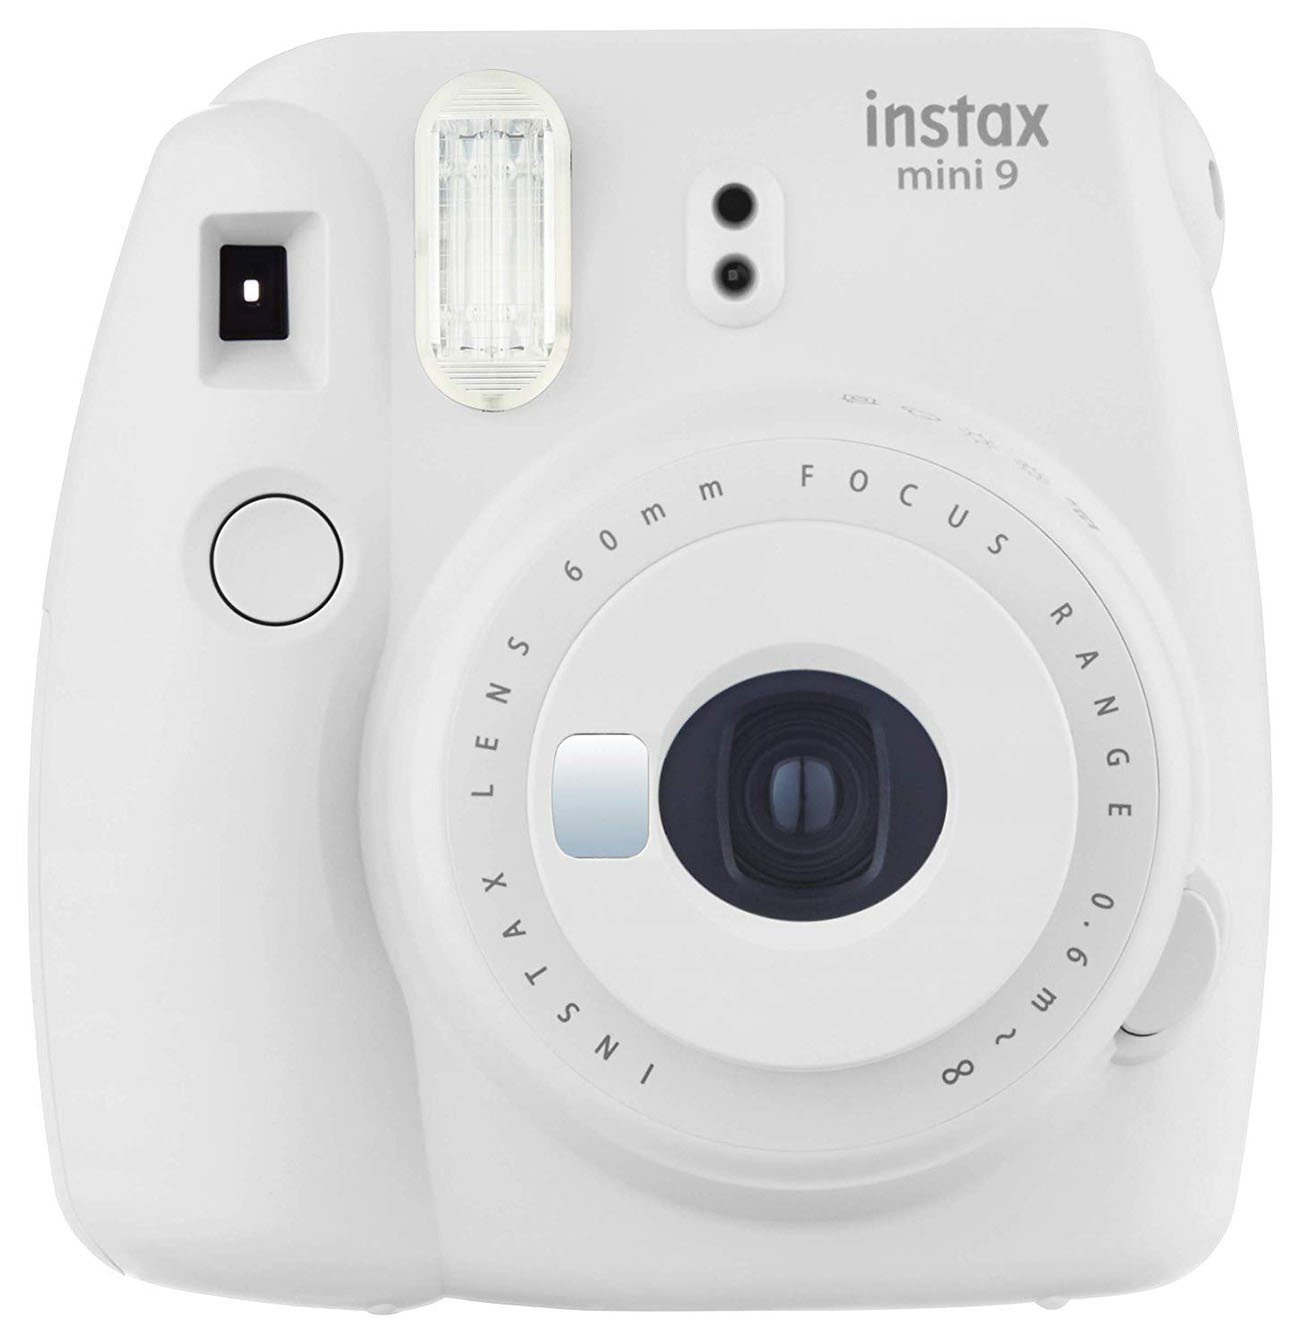 The perfect gift for anyone – the Fuji instax camera.